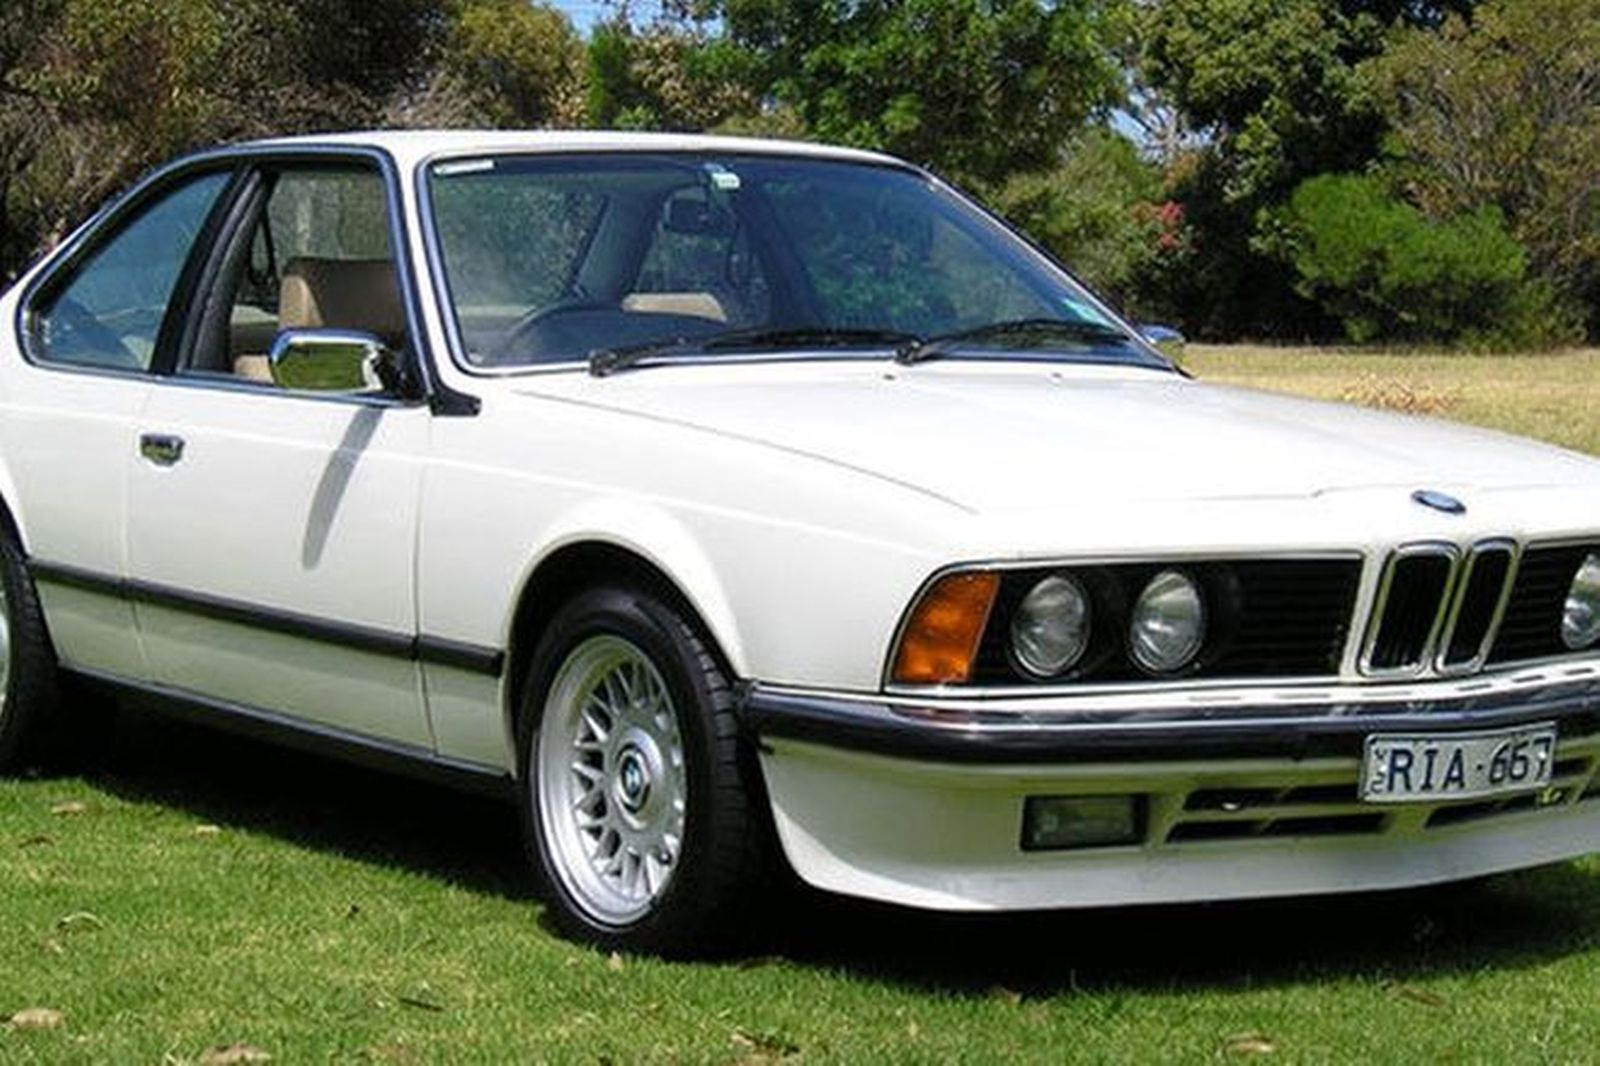 1983 bmw 635csi coupe sold bmw 635 csi coupe auctions lot 26 shannons E24 633CSi at nearapp.co